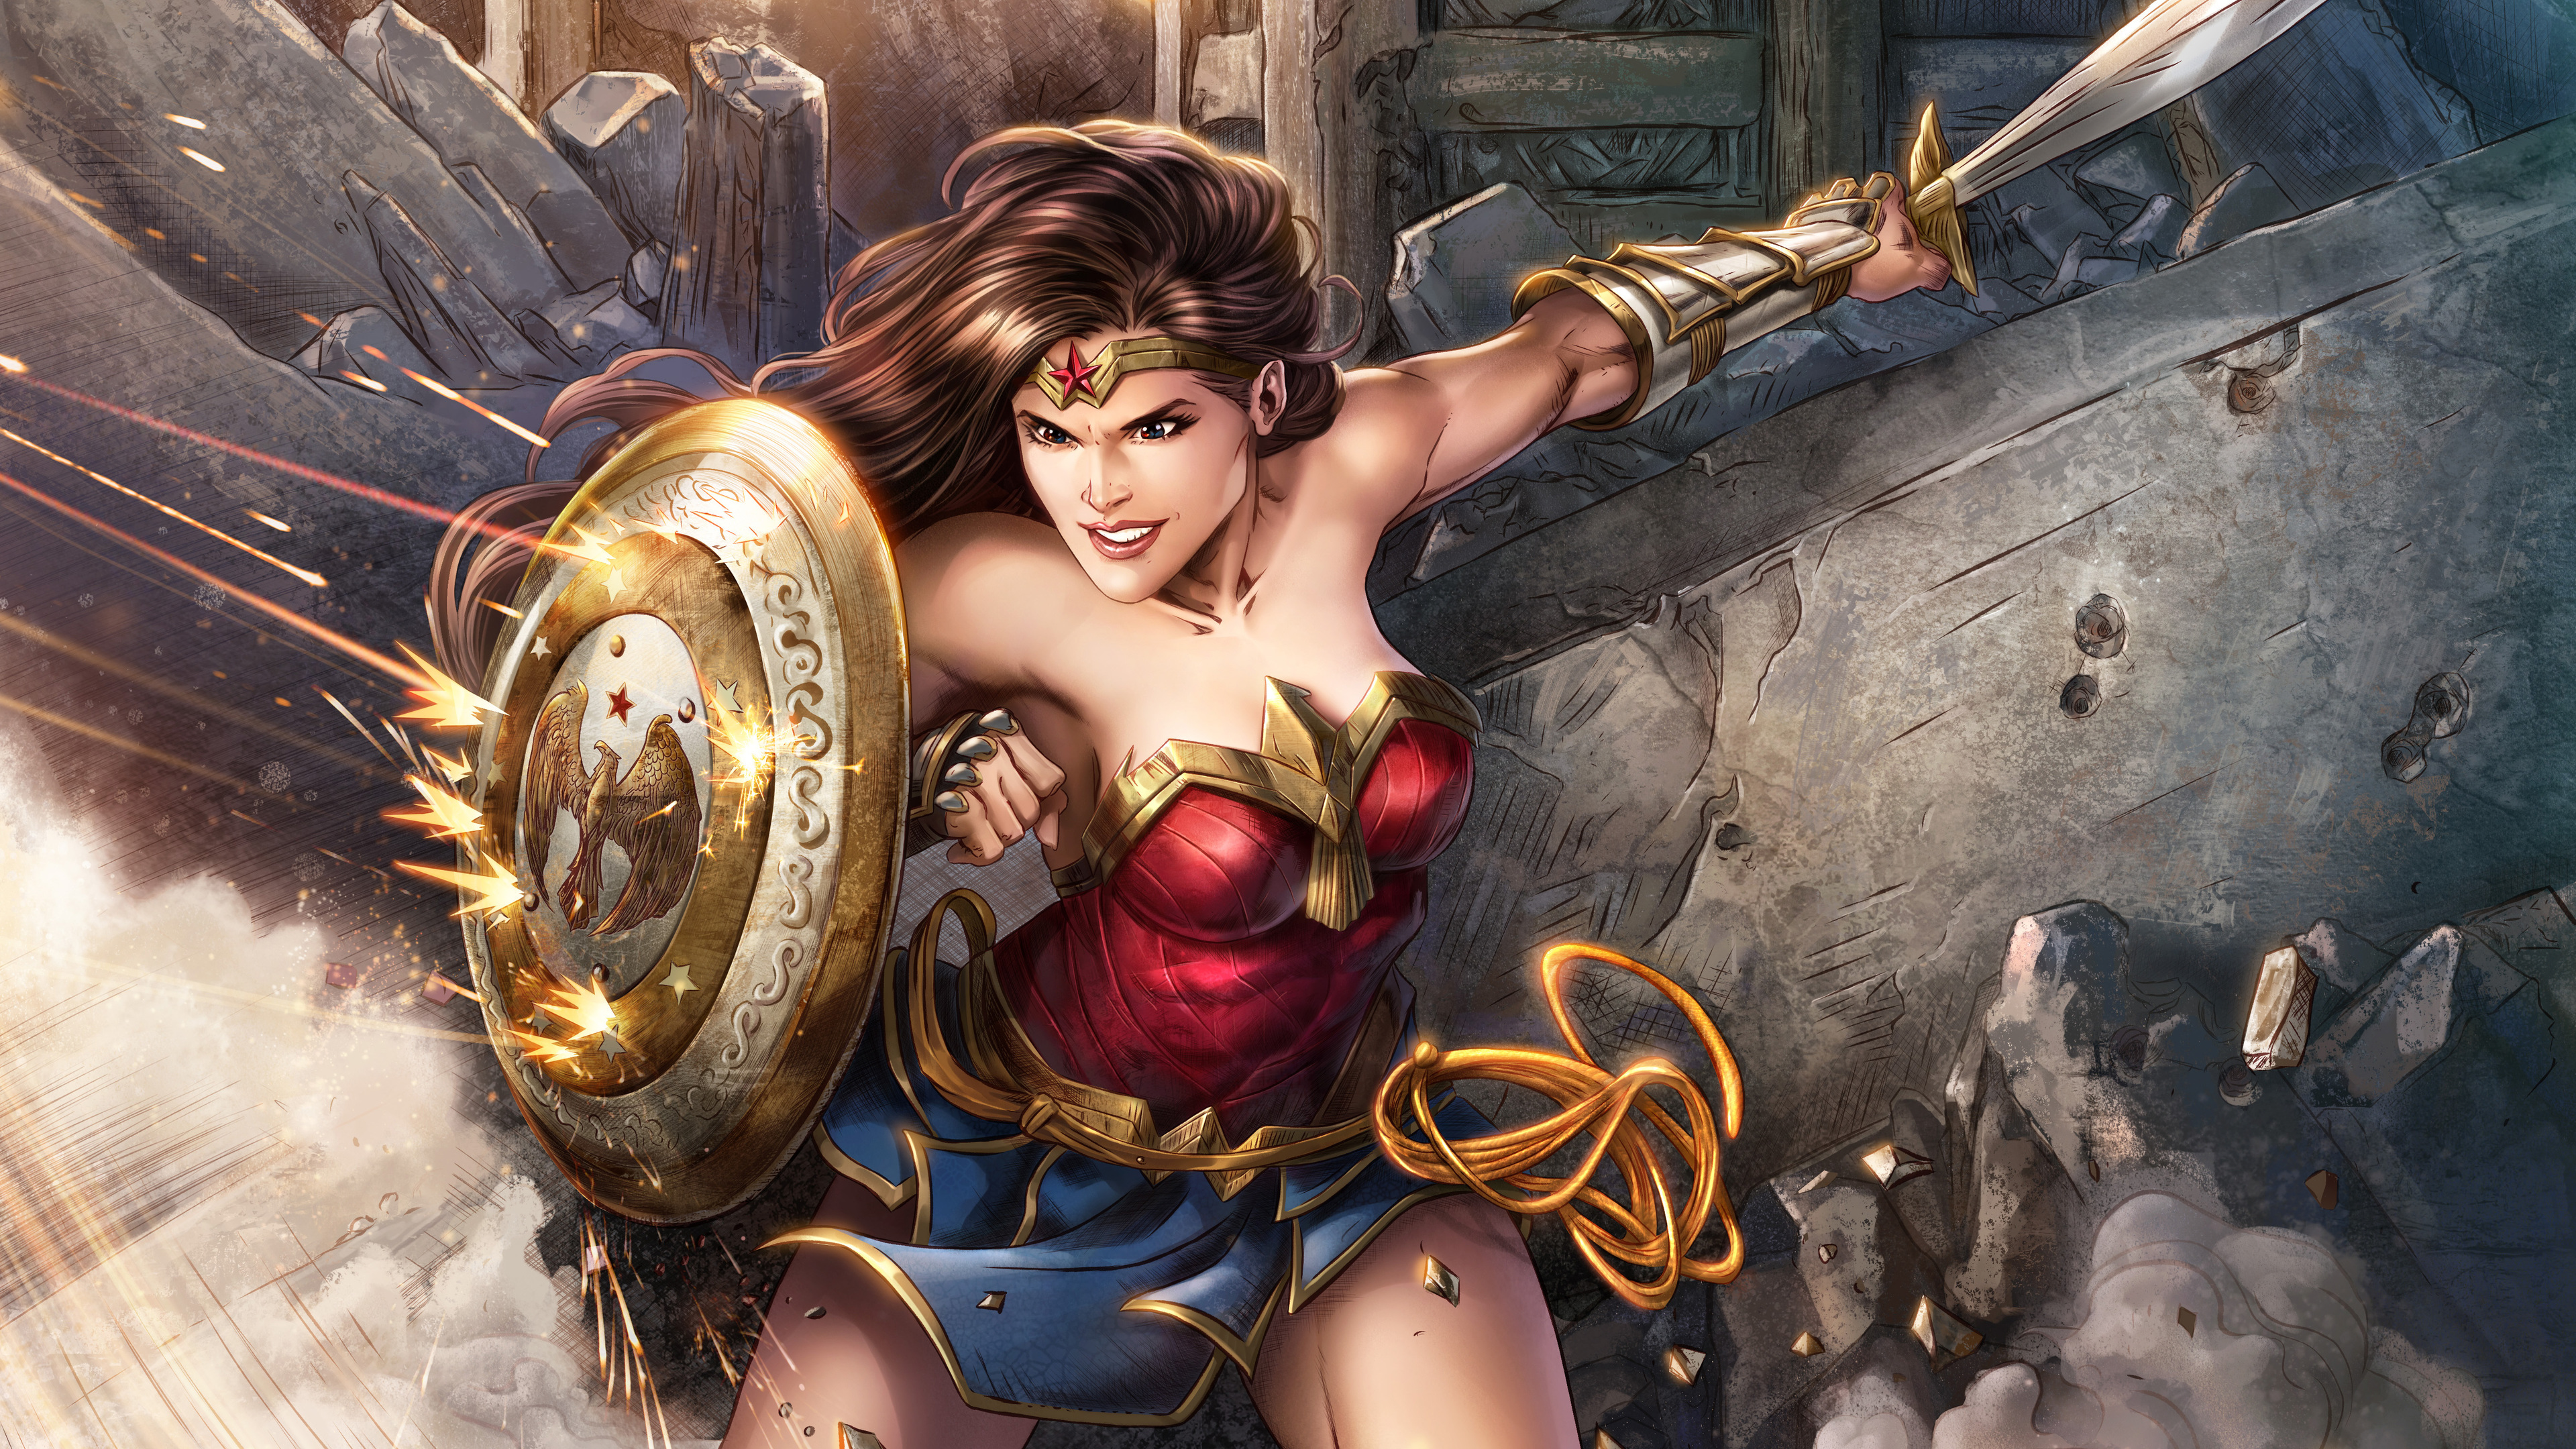 wonder woman 5k digital artwork 1537646017 - Wonder Woman 5k Digital Artwork - wonder woman wallpapers, superheroes wallpapers, hd-wallpapers, digital art wallpapers, artwork wallpapers, 5k wallpapers, 4k-wallpapers